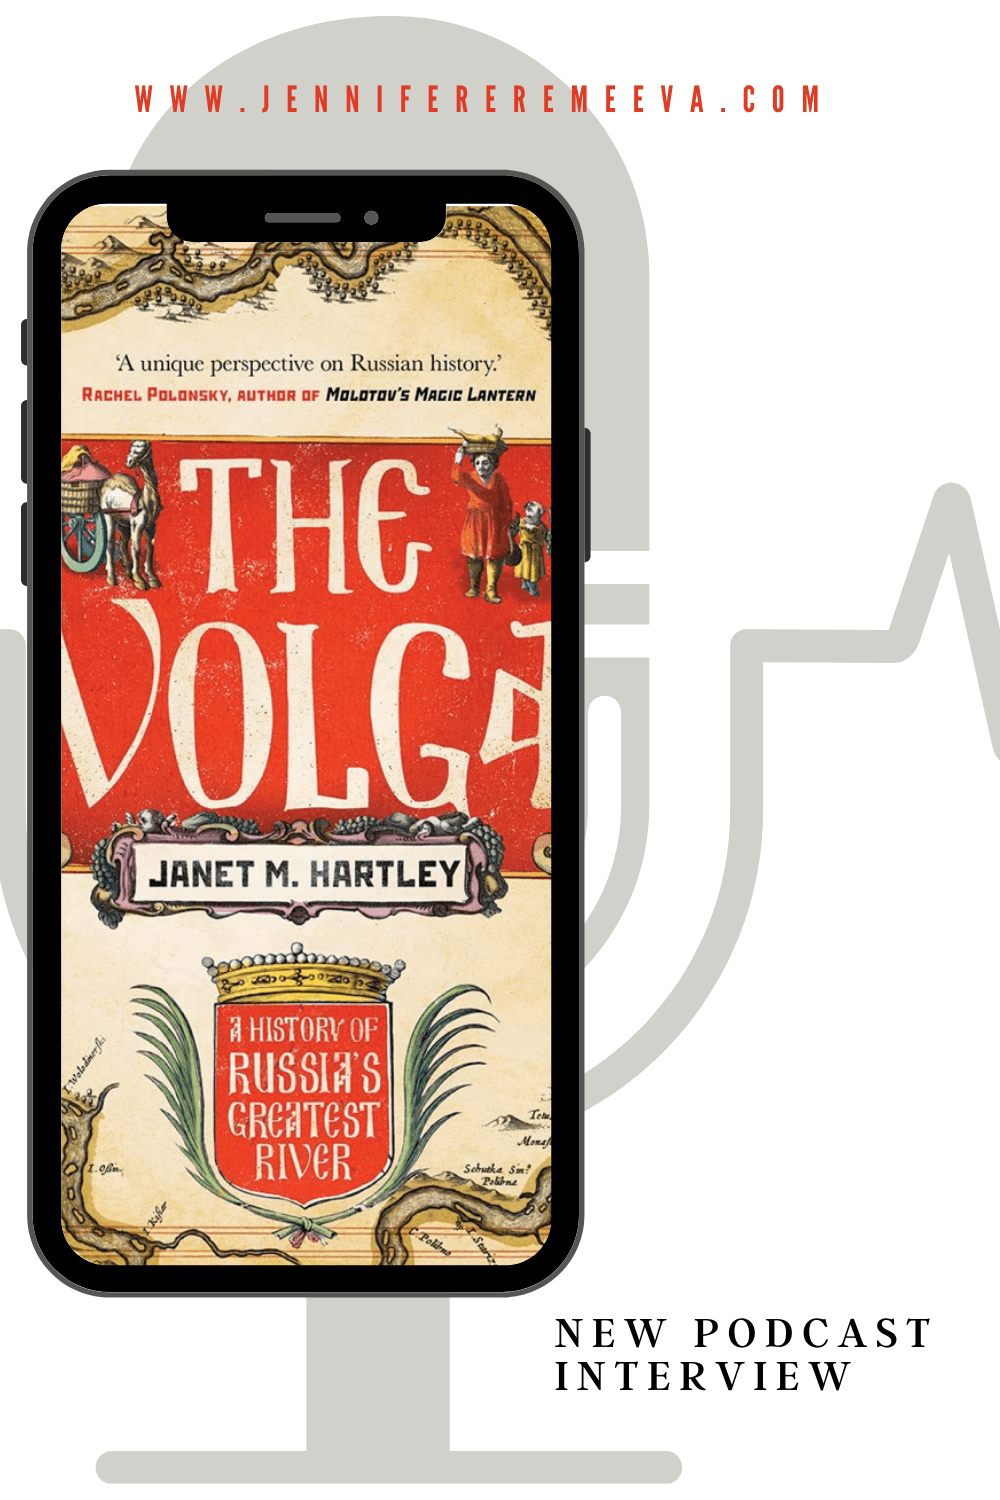 Pinterest pin about Janet Hartley's The Volga